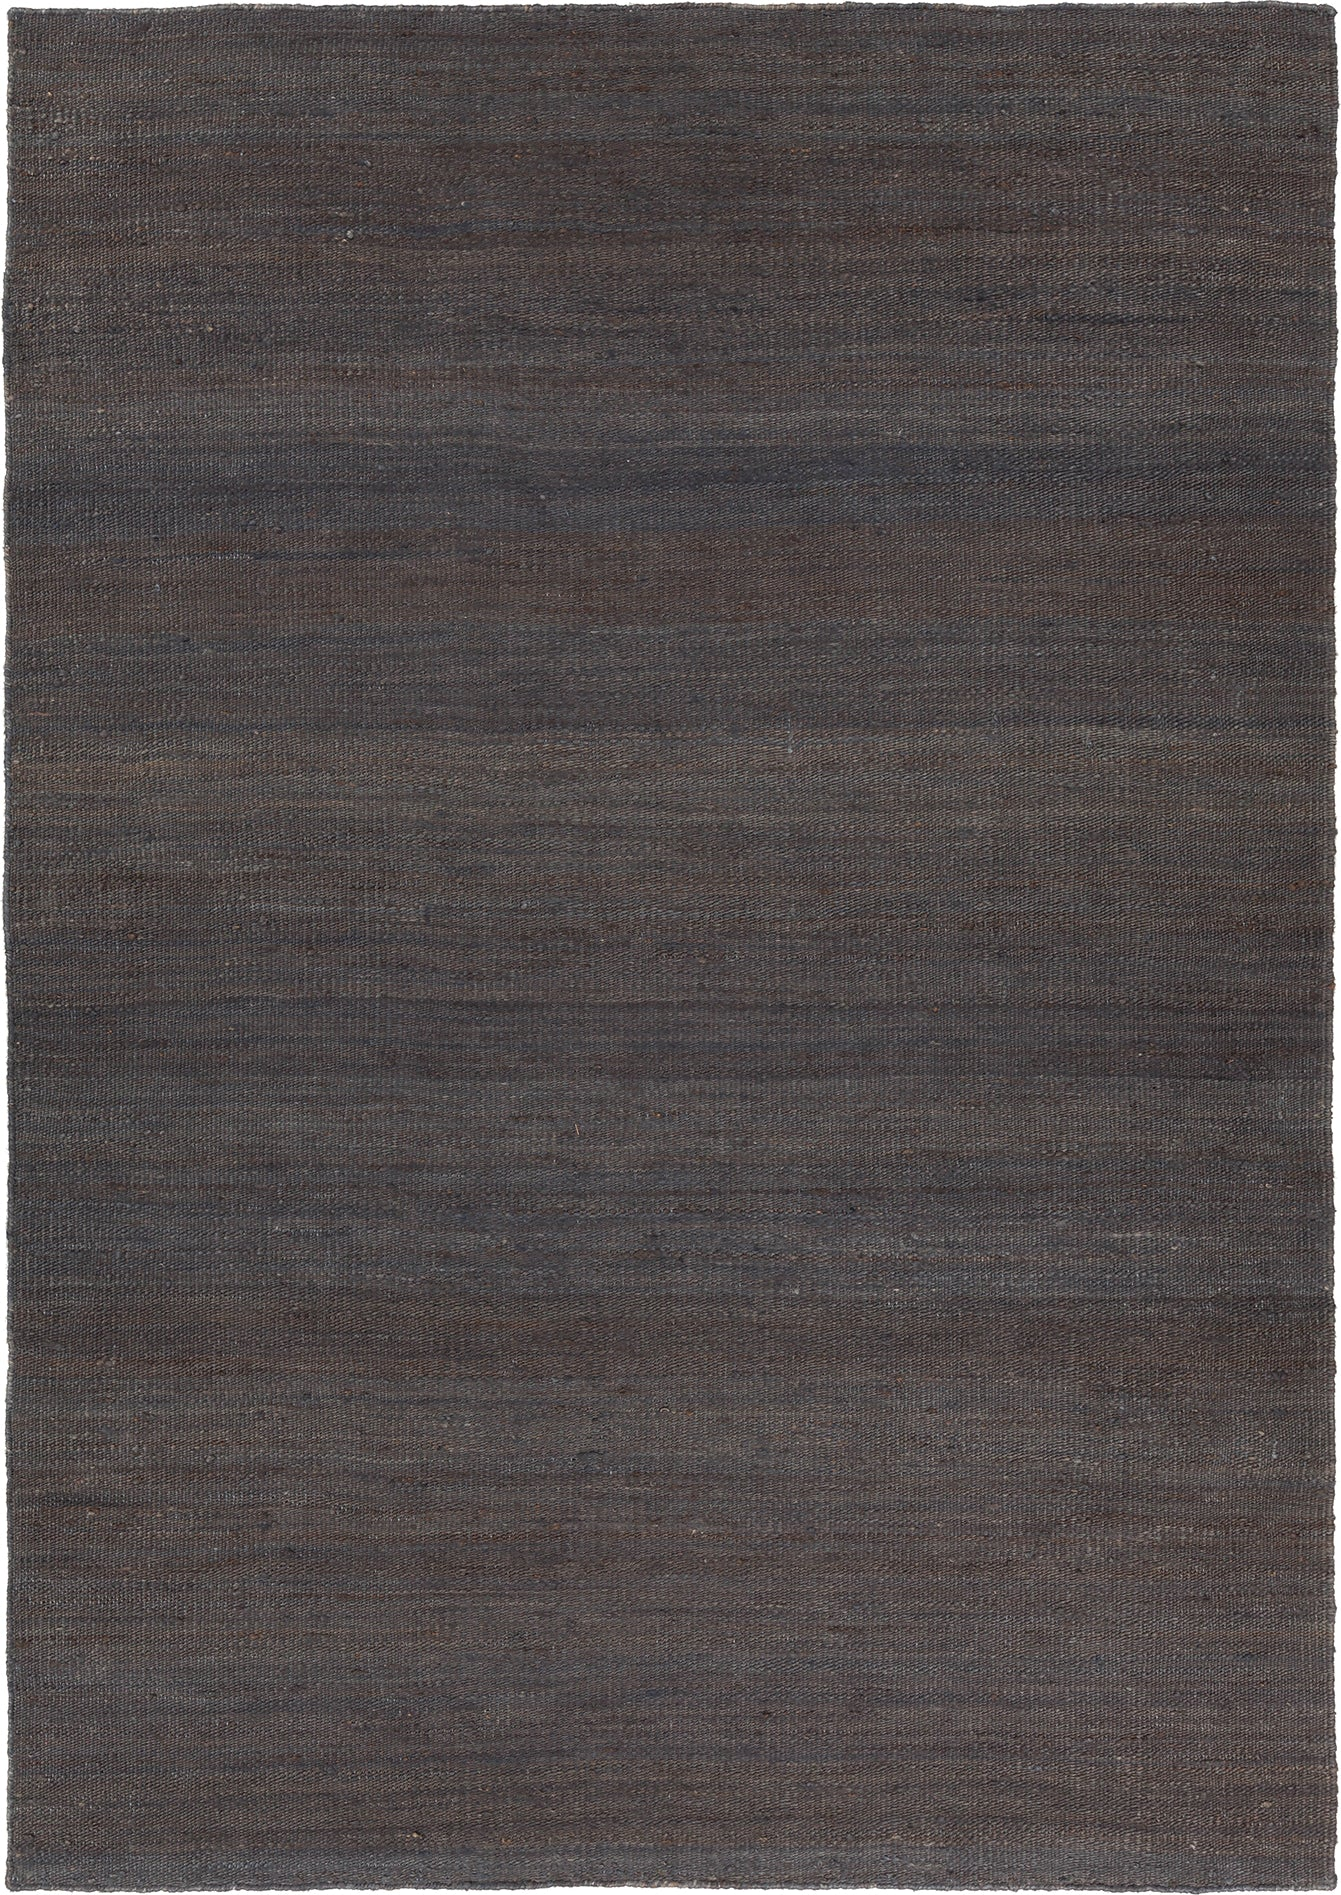 Chandra Mabel Mab 48801 Grey Area Rug Incredible Rugs And Decor